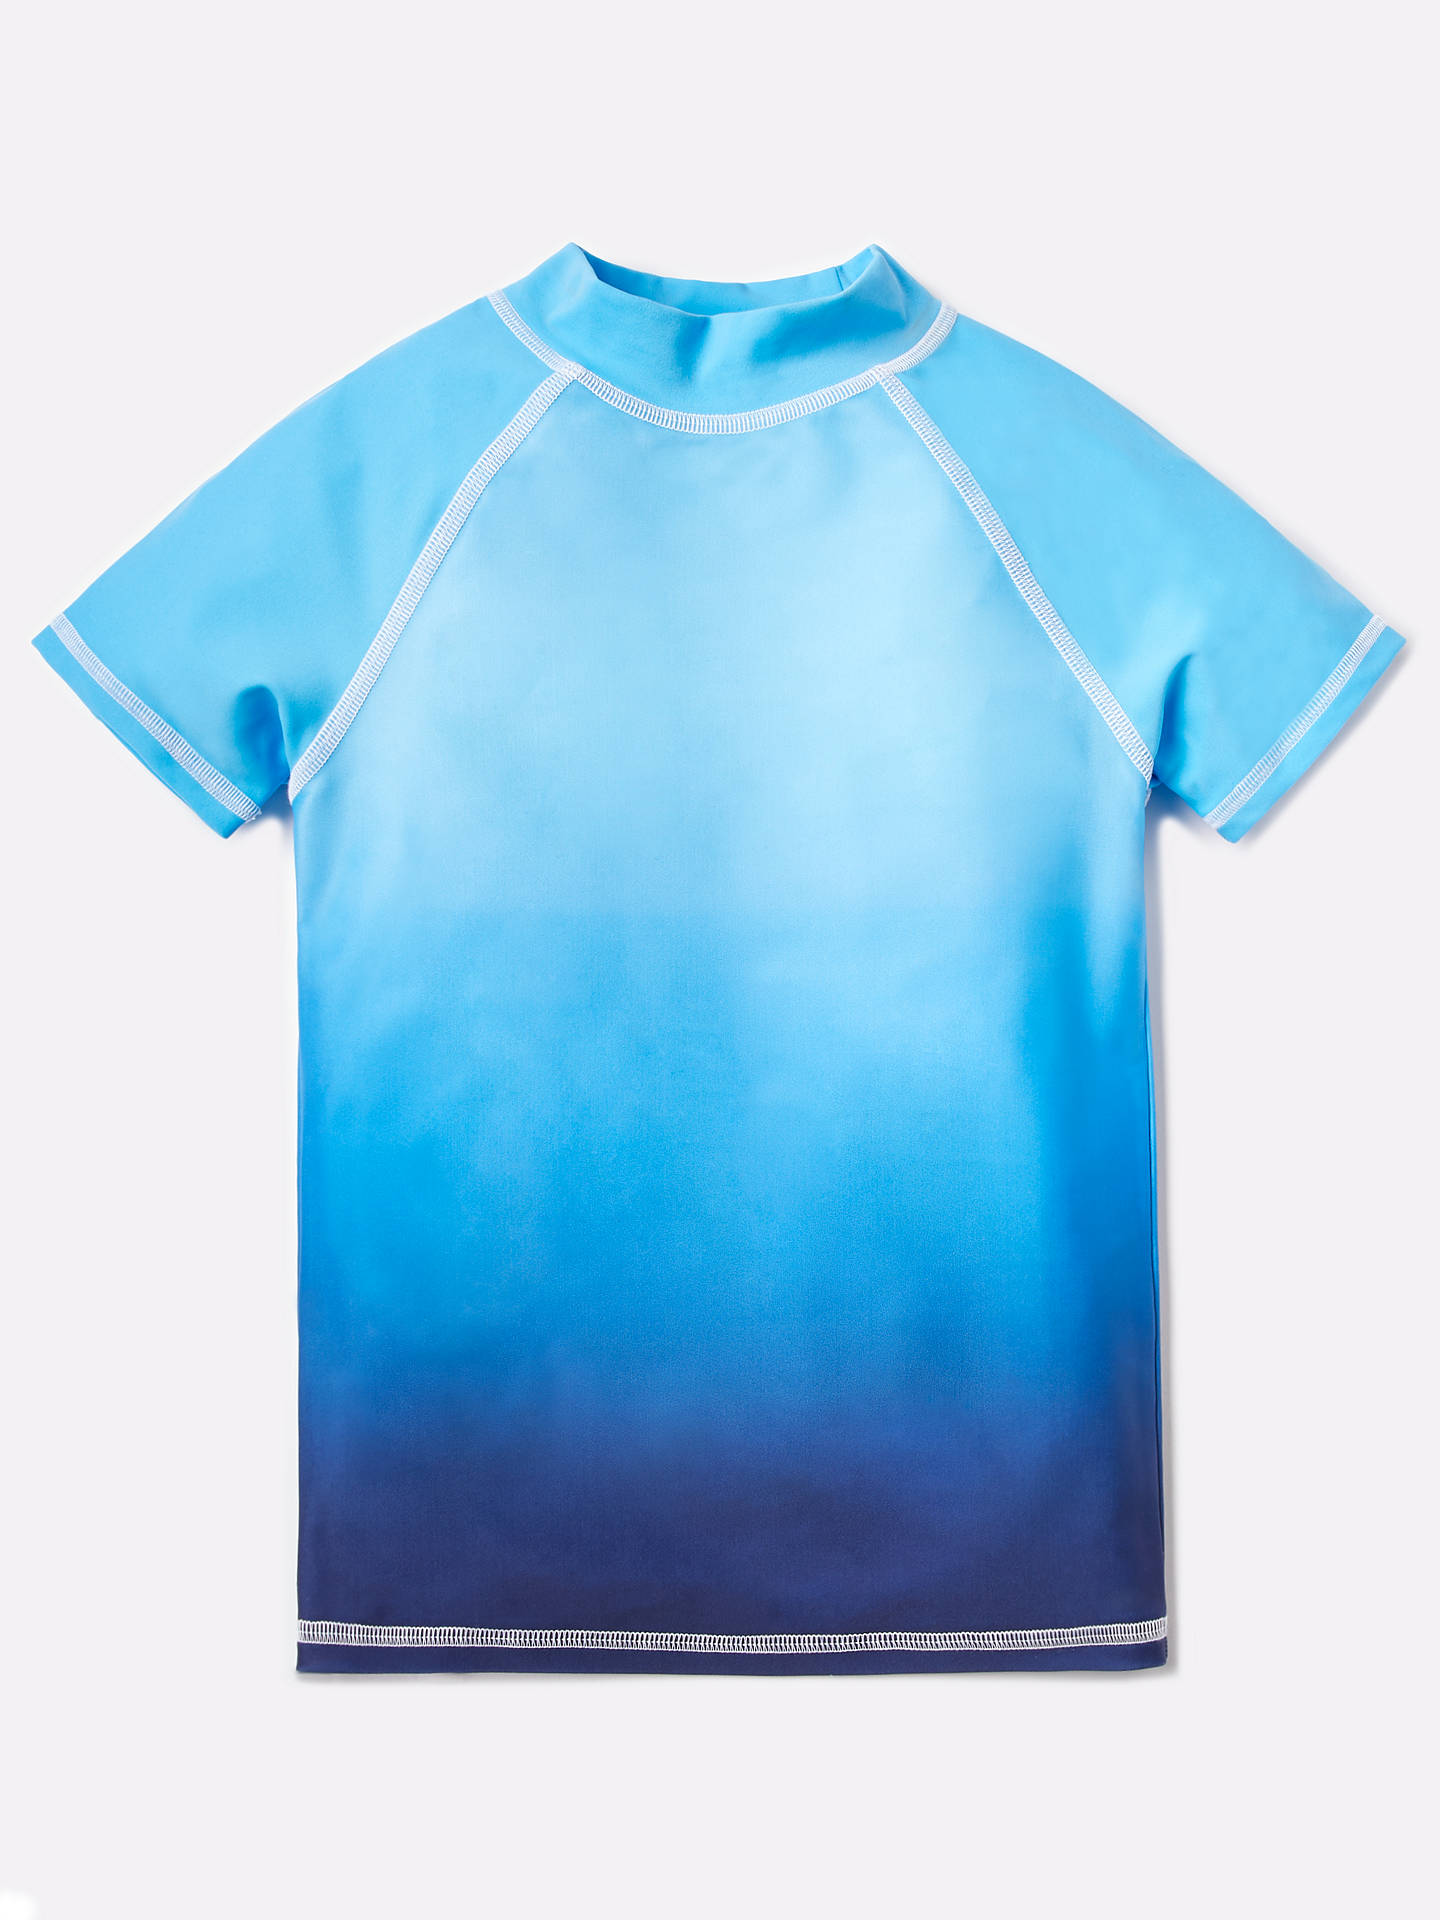 Buy John Lewis & Partners Boys' Ombre Rashie Vest, Blue, 4 years Online at johnlewis.com